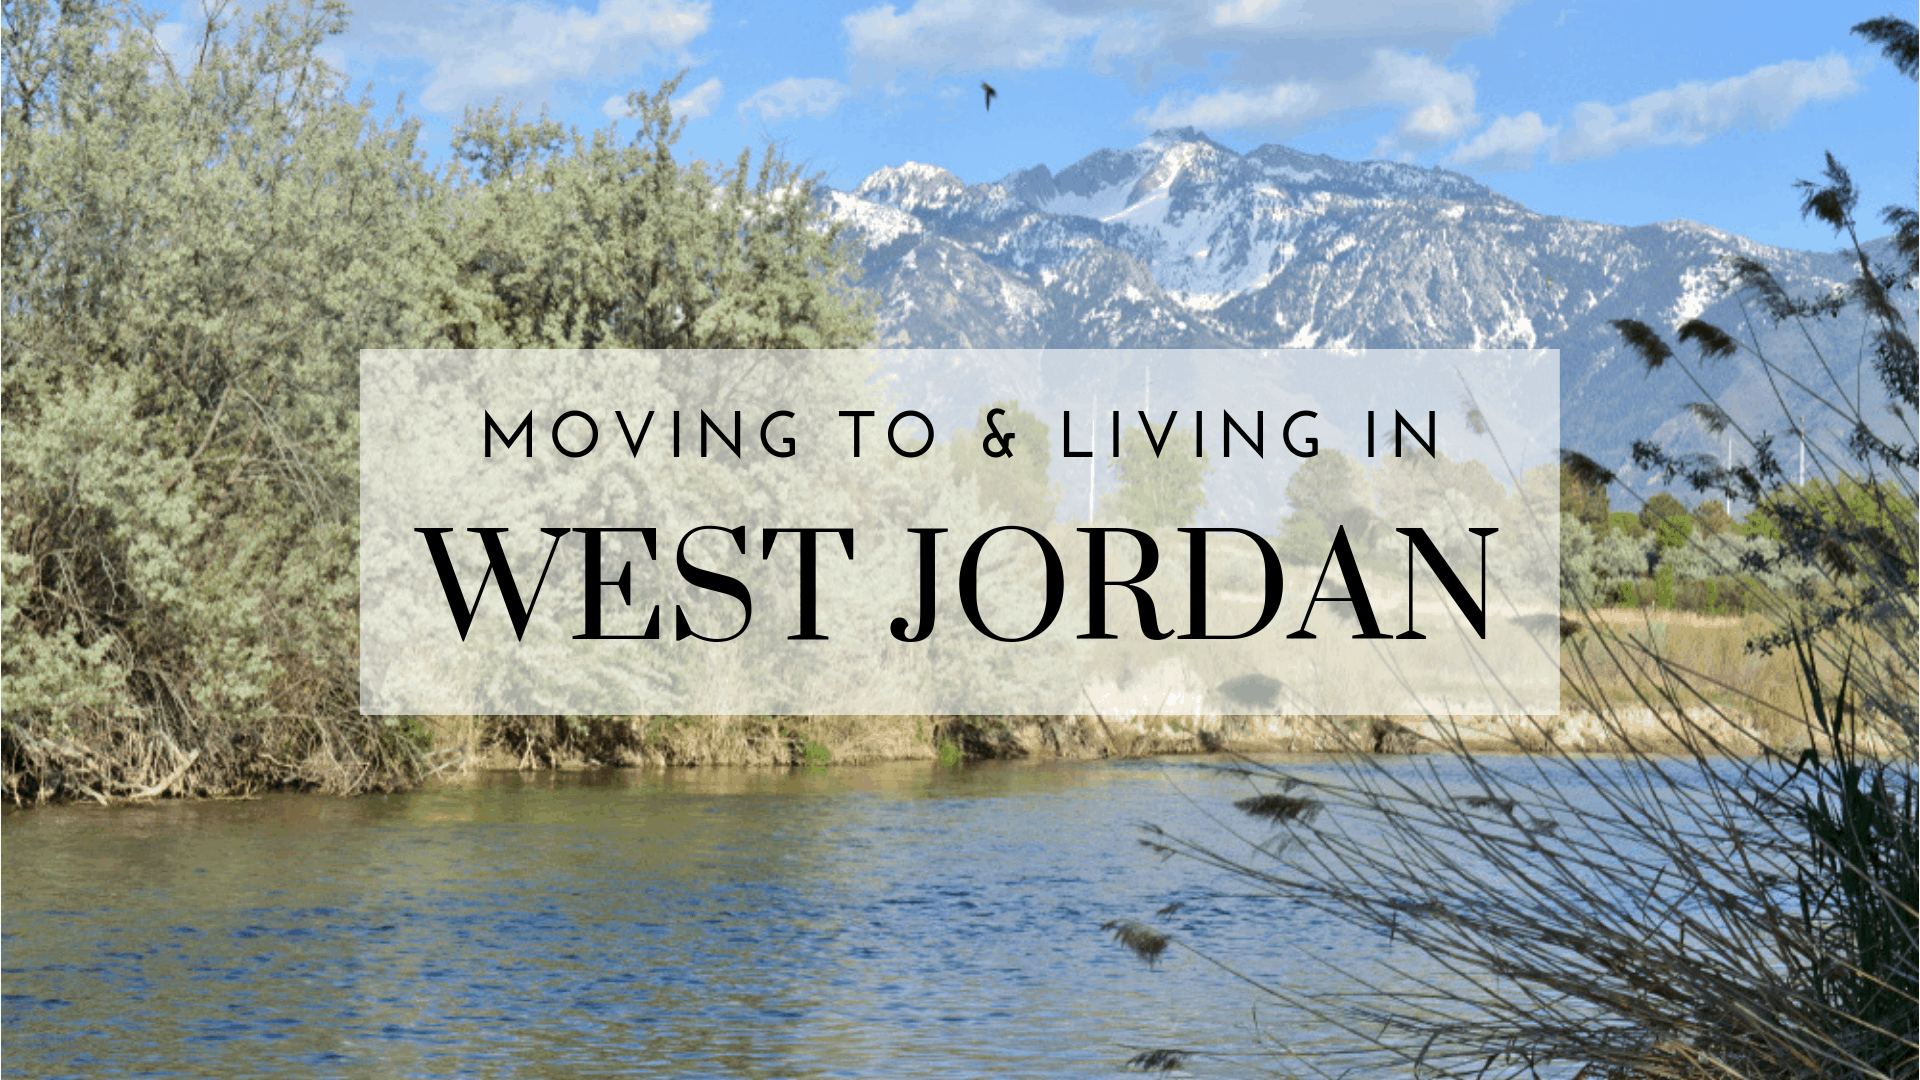 Jordan River - Moving to West Jordan